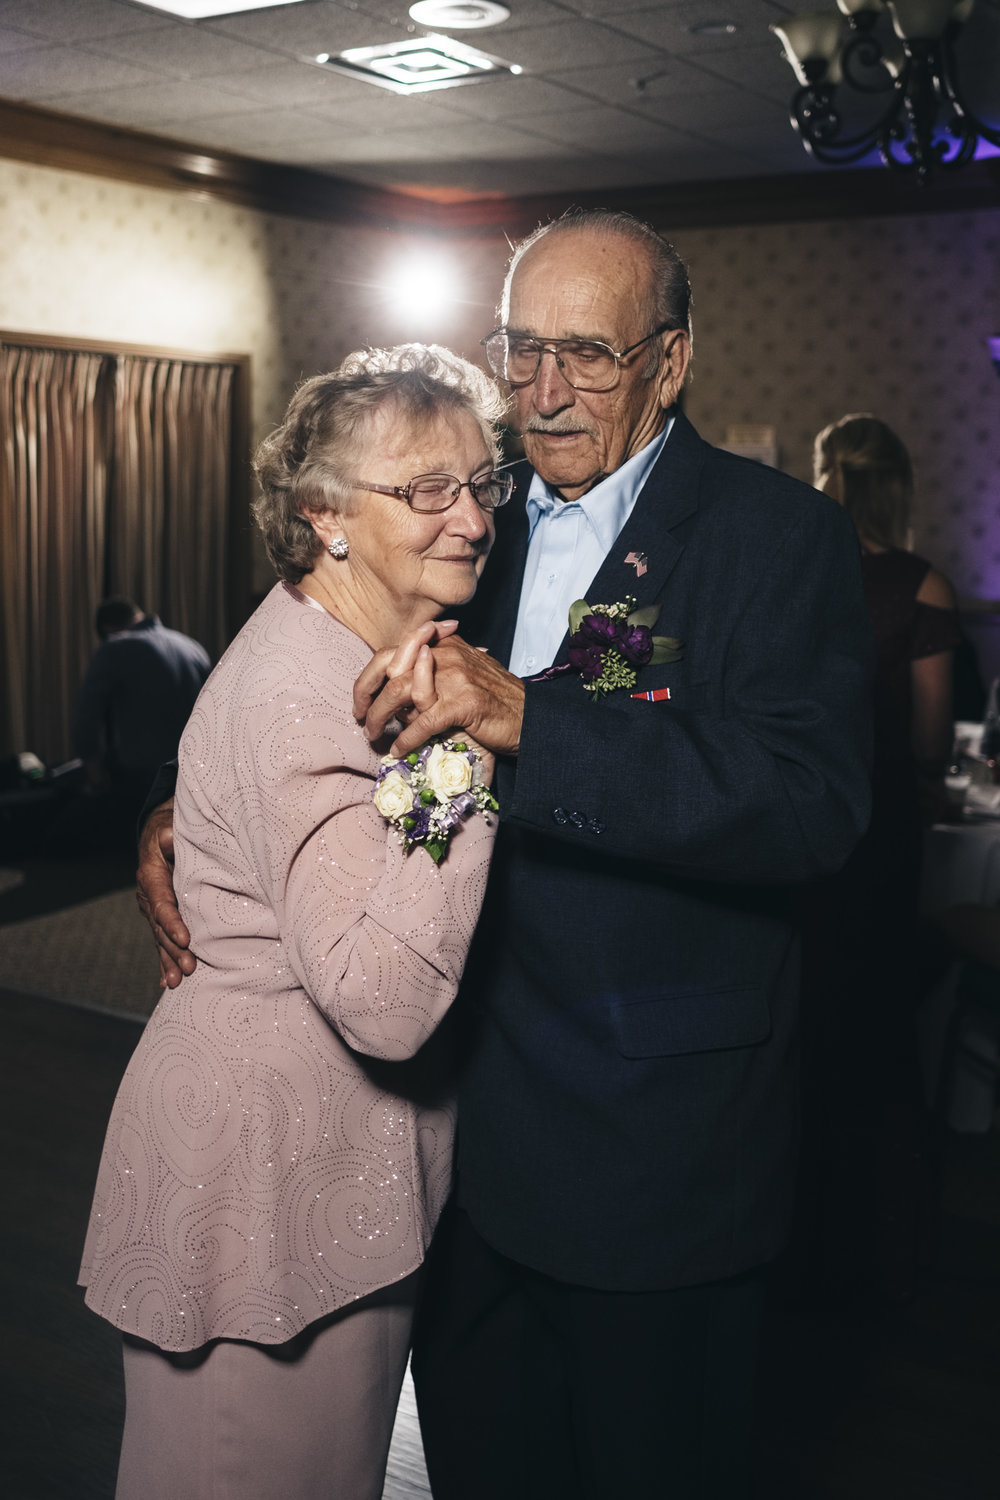 Cute couple dances during anniversary dance at Northern Ohio wedding reception